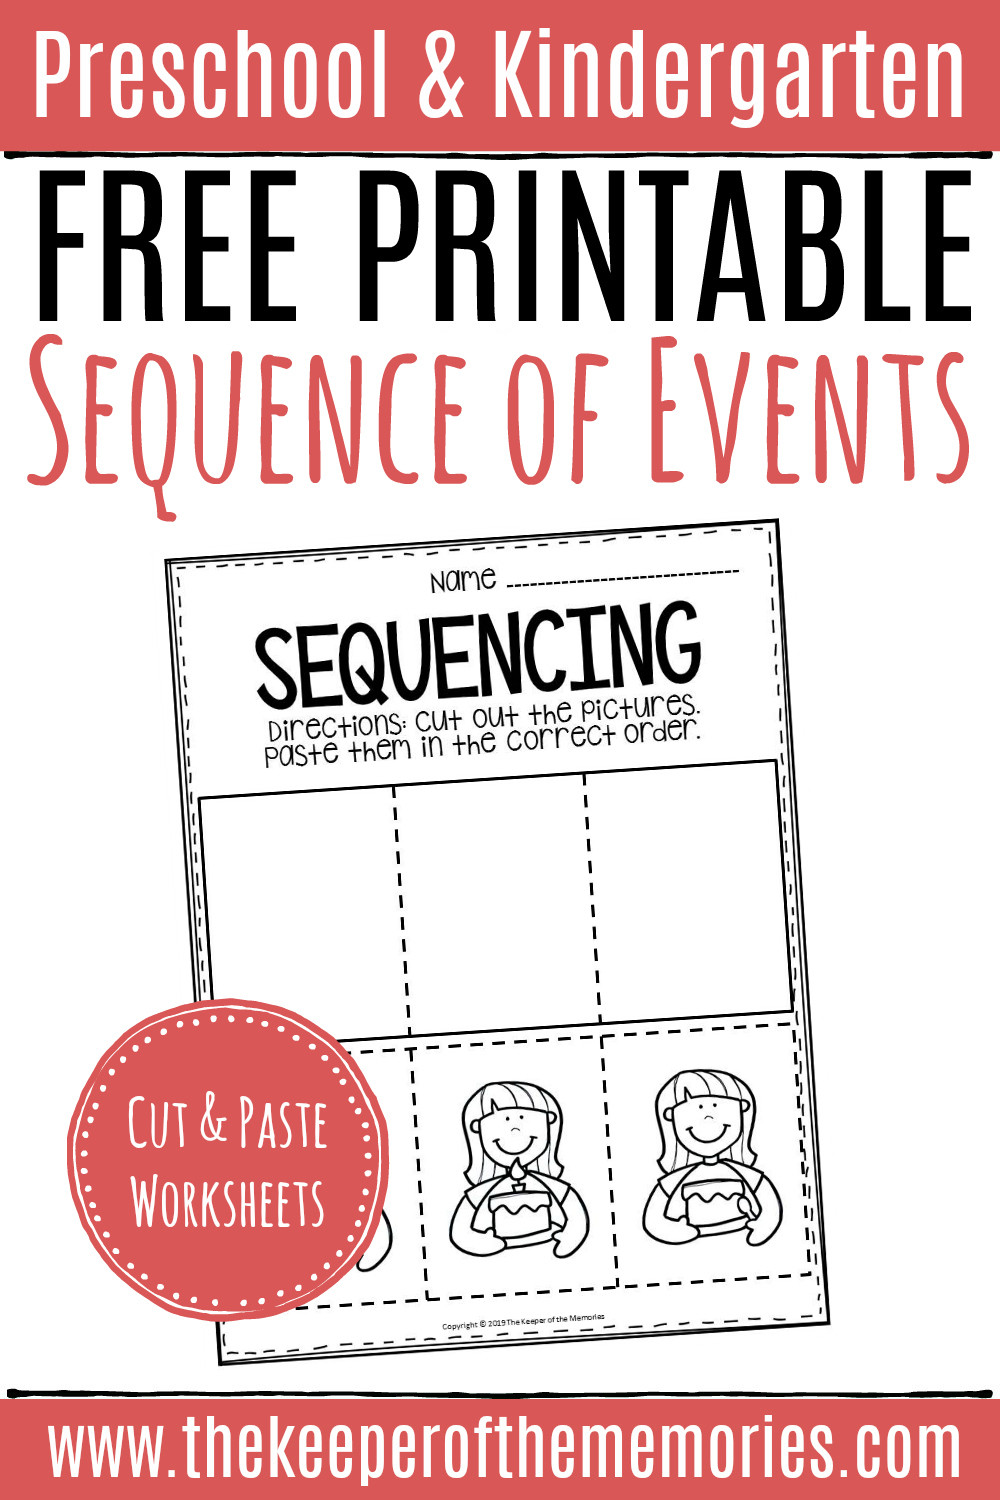 Sequence Worksheets 5th Grade Free Printable Sequence events Worksheets Sequencing Cut